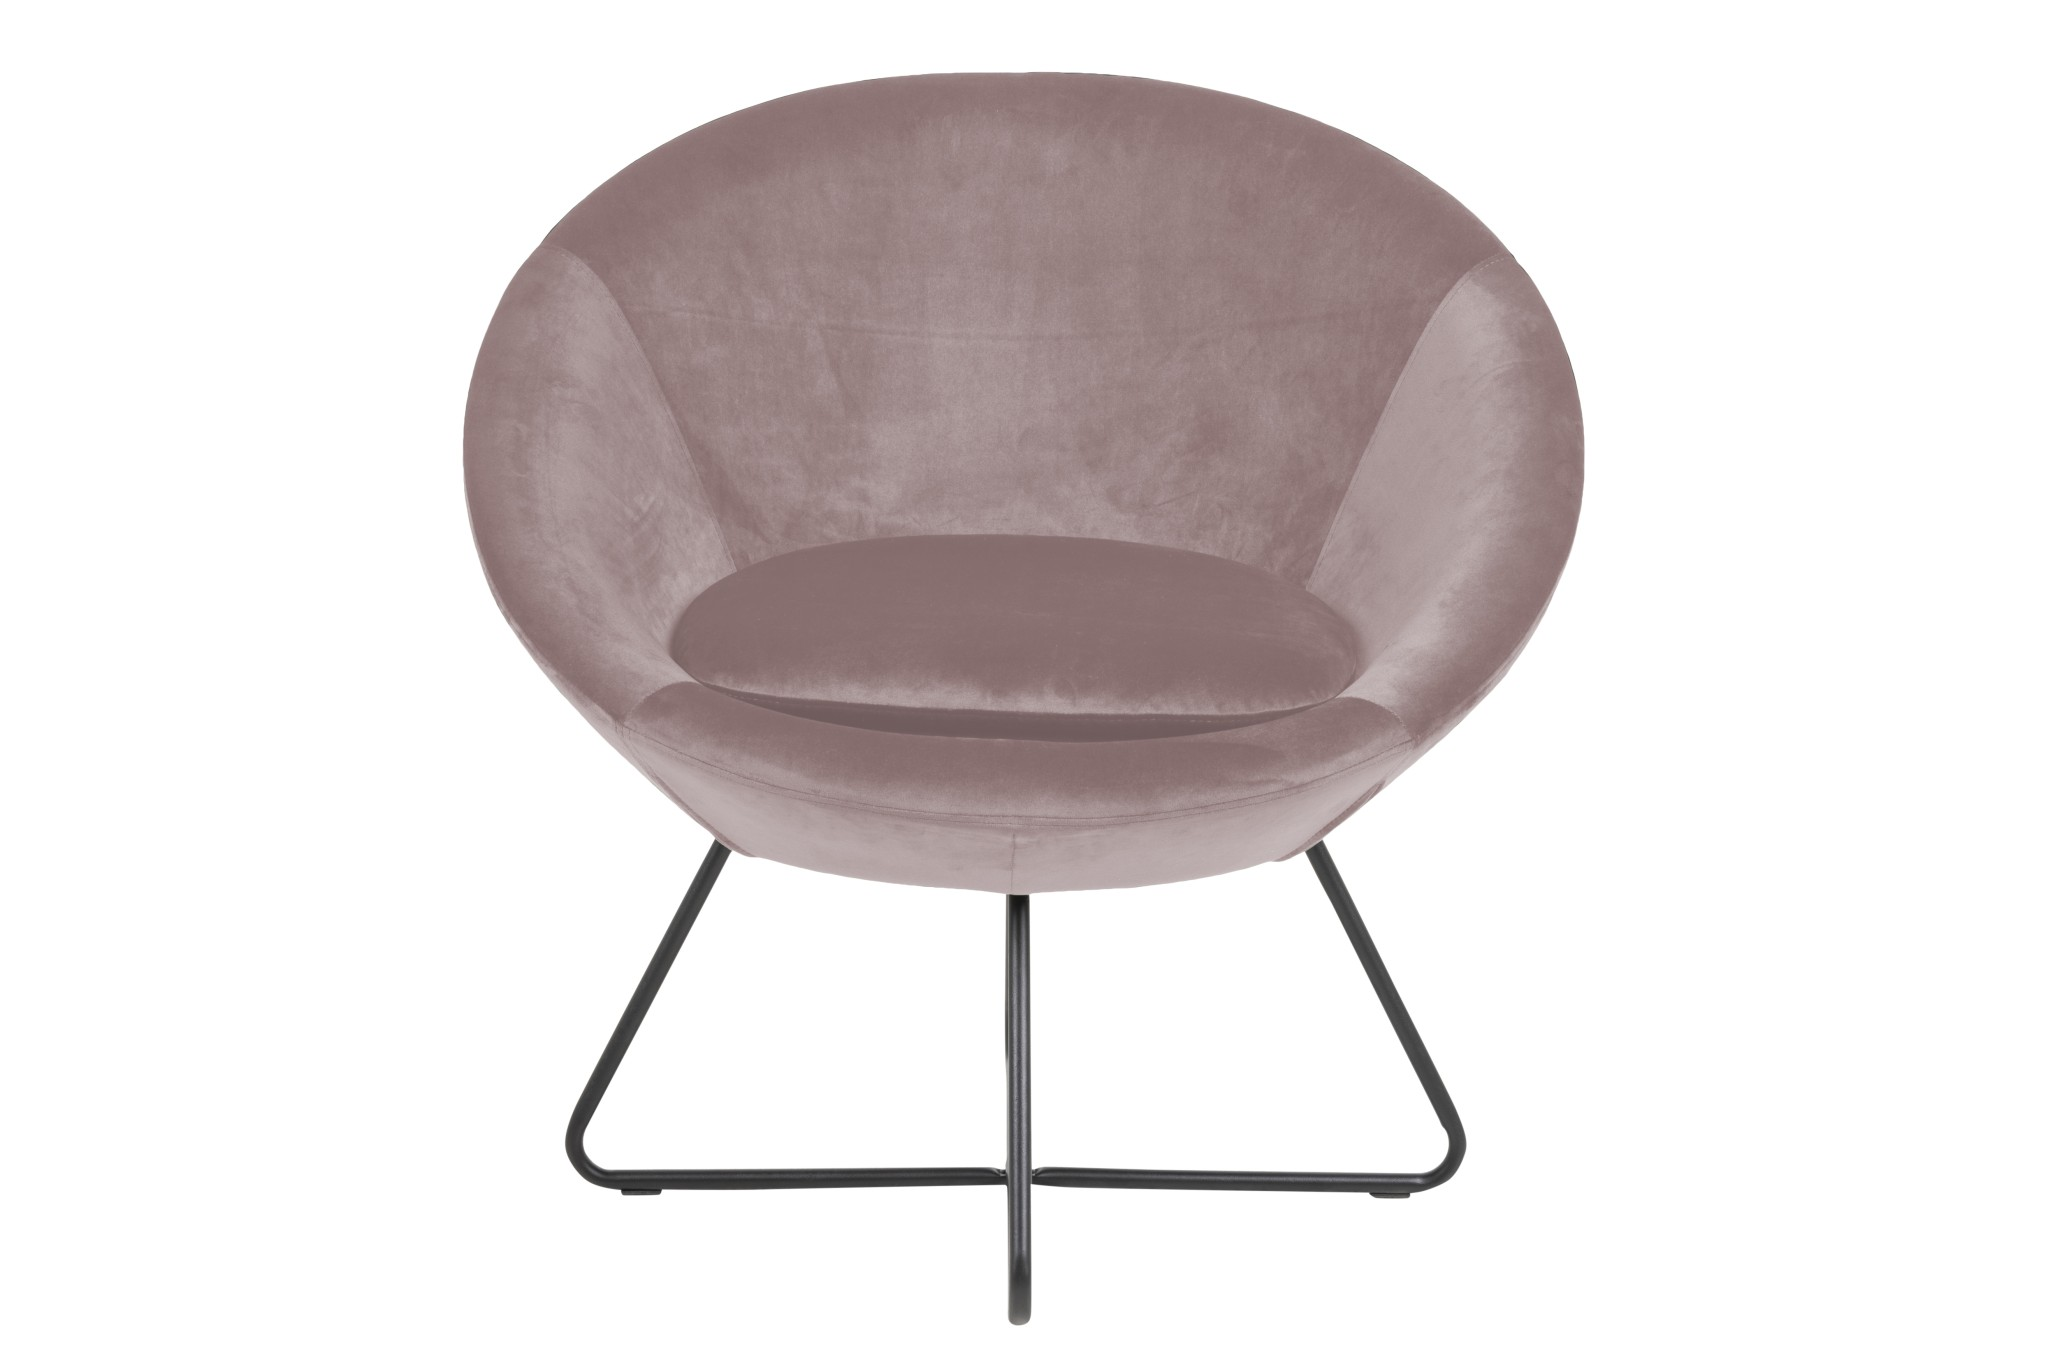 Sessel Cense Polstersessel Wohnzimmer Relaxsessel Fernsehsessel Clubsessel